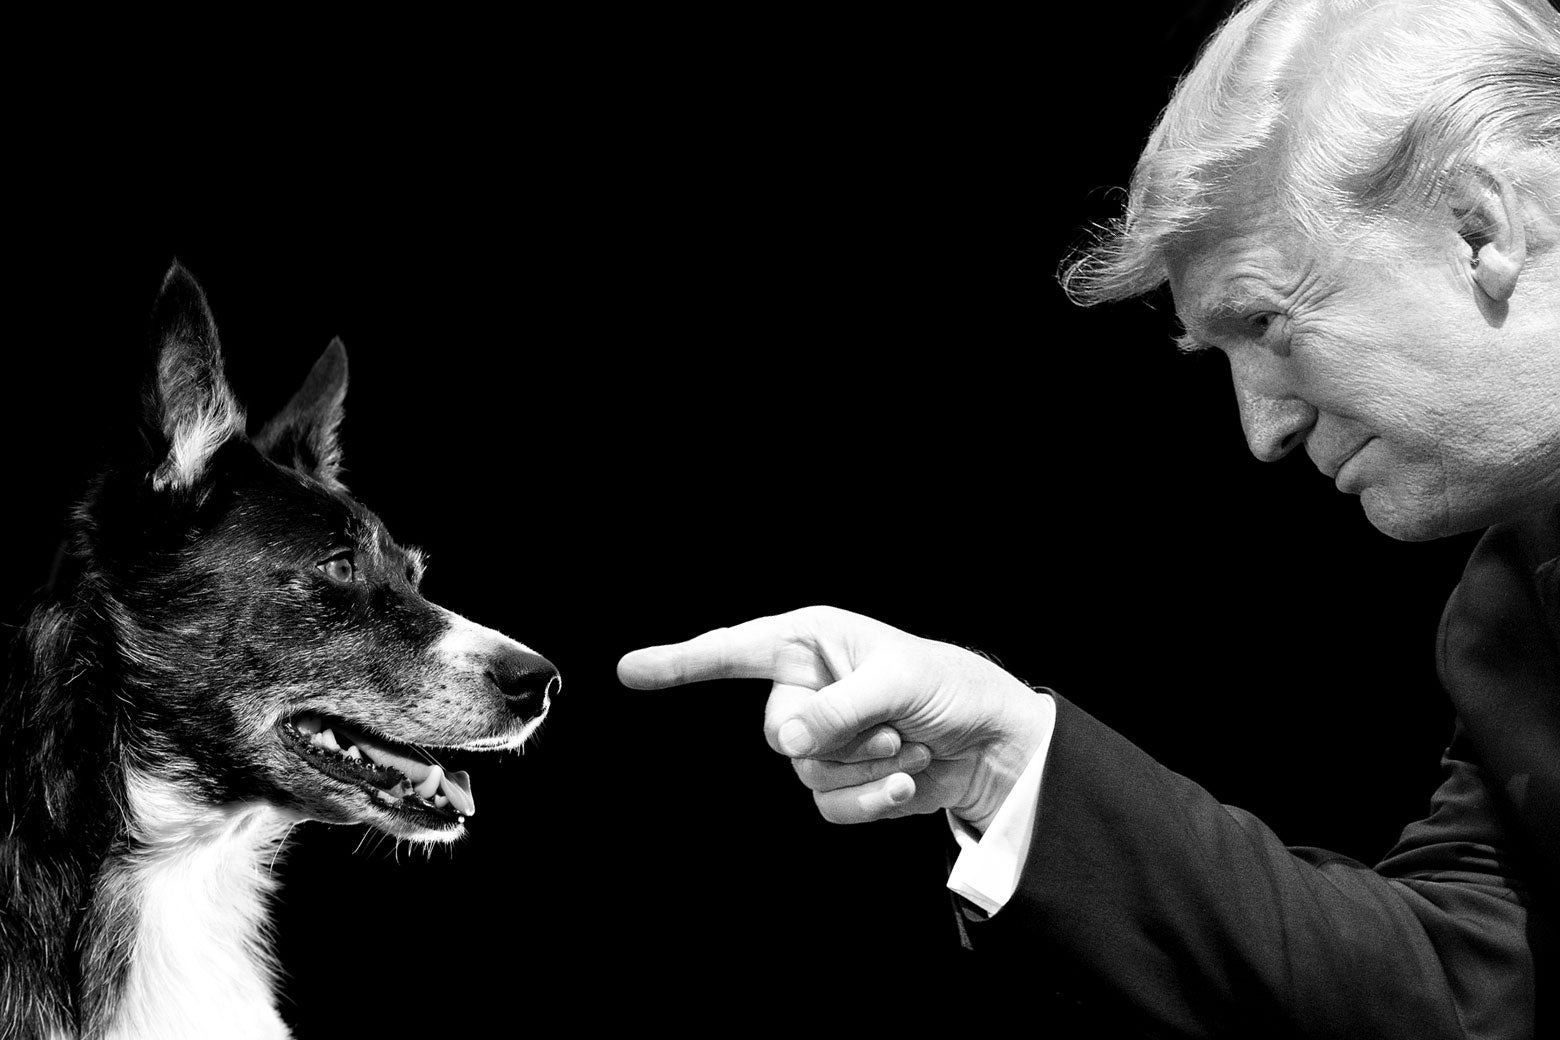 Slate - Does Donald Trump Even Like Dogs?